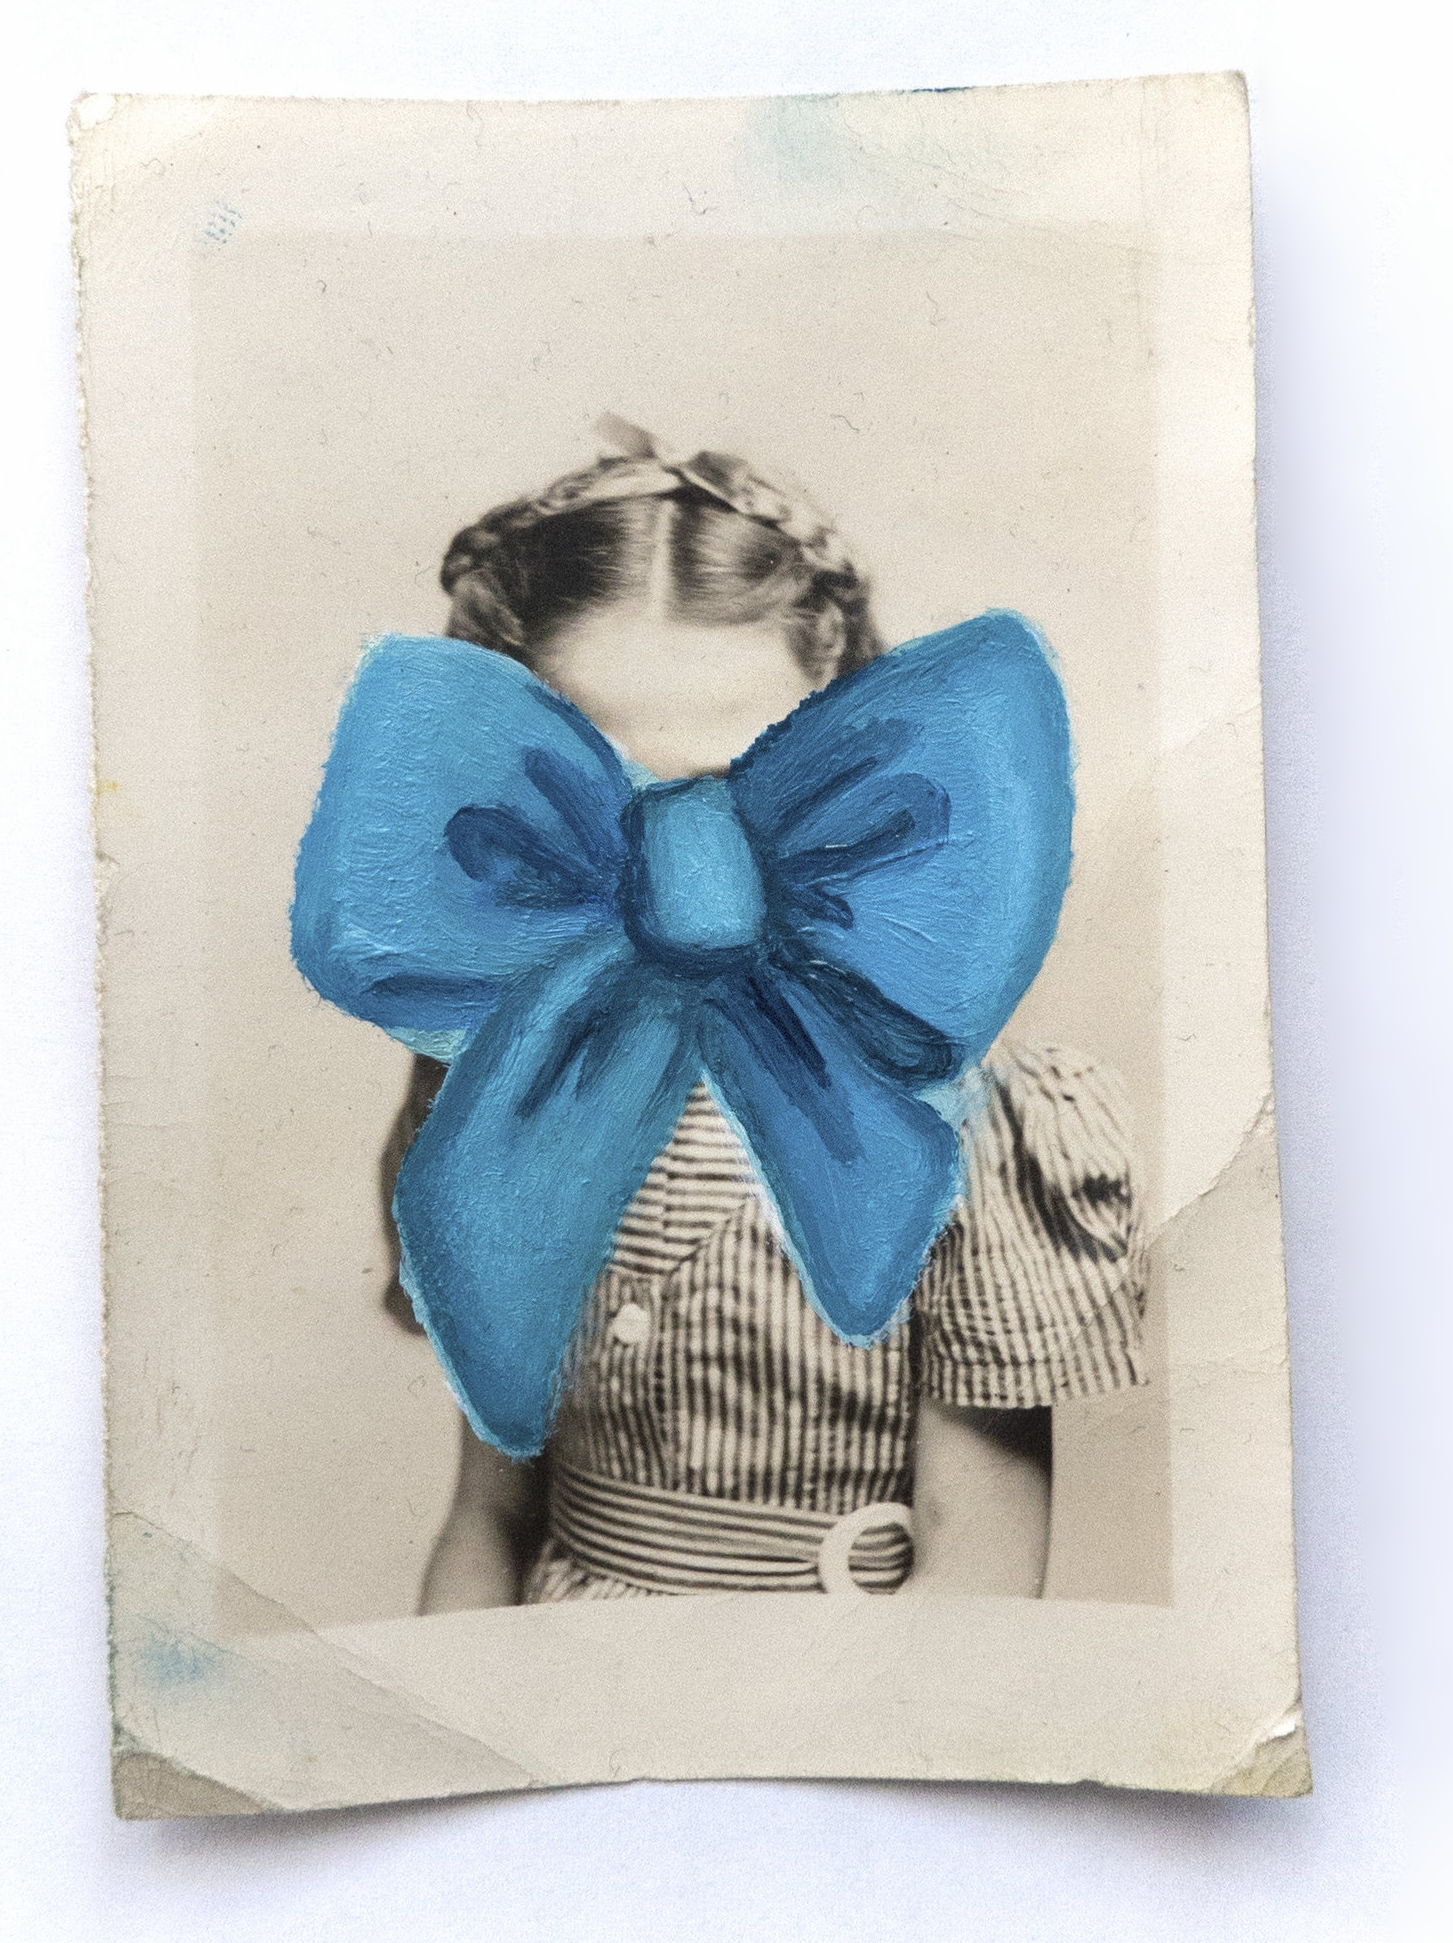 - |BLUE RIBBON (AT 5YRS OLD)| MASKED MEMORIESoil on vintage photograph